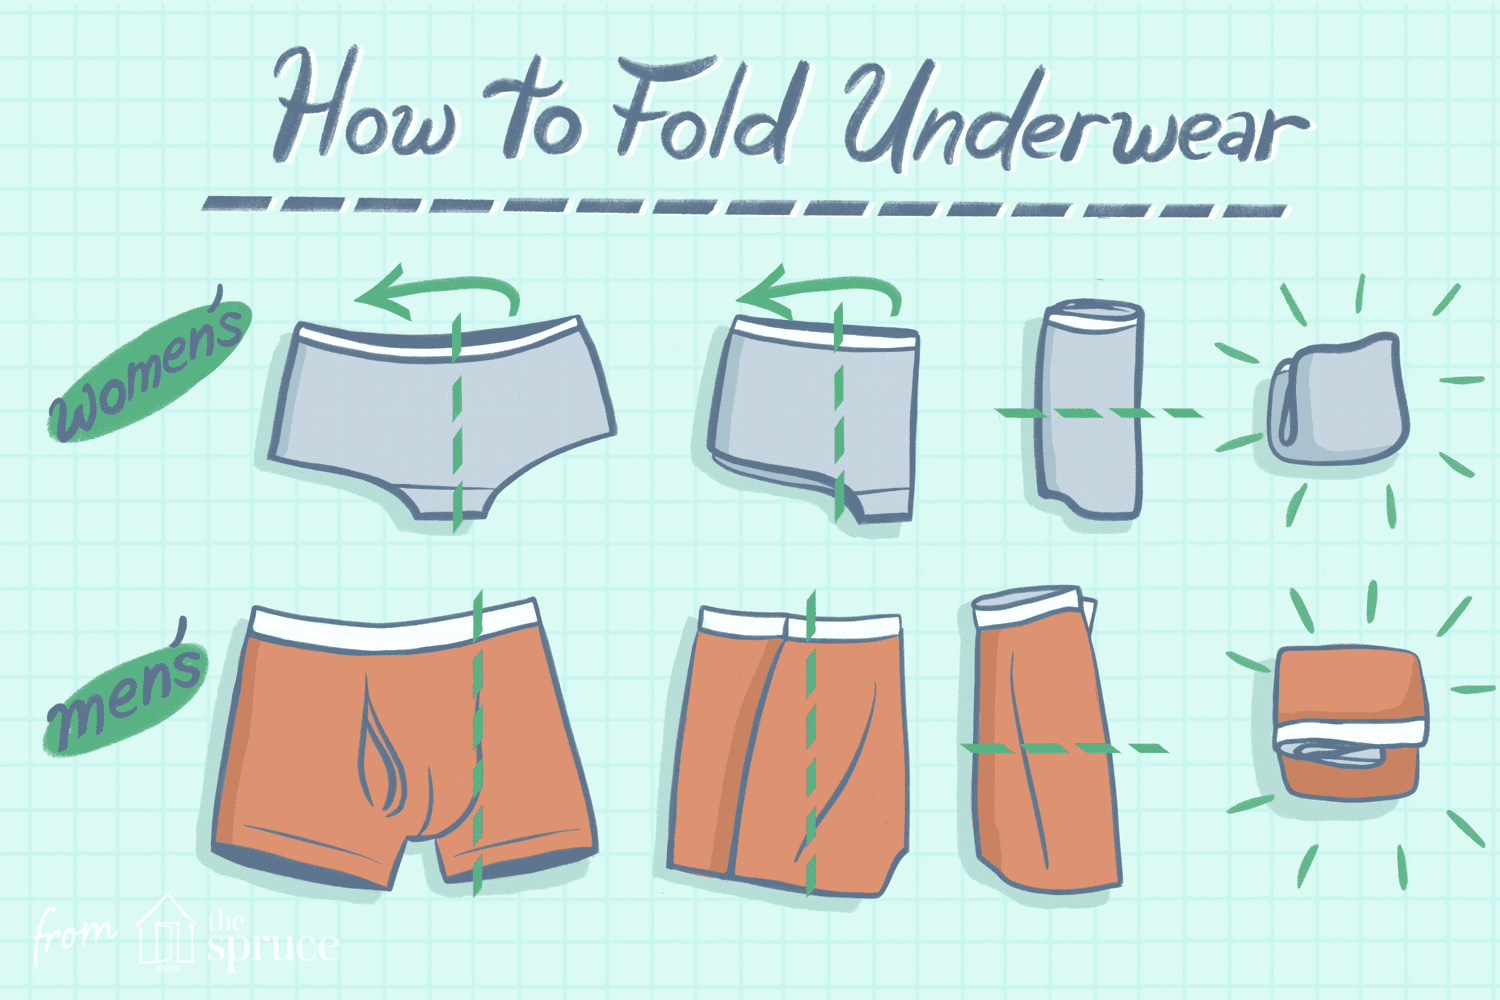 Illustration of how to fold underwear